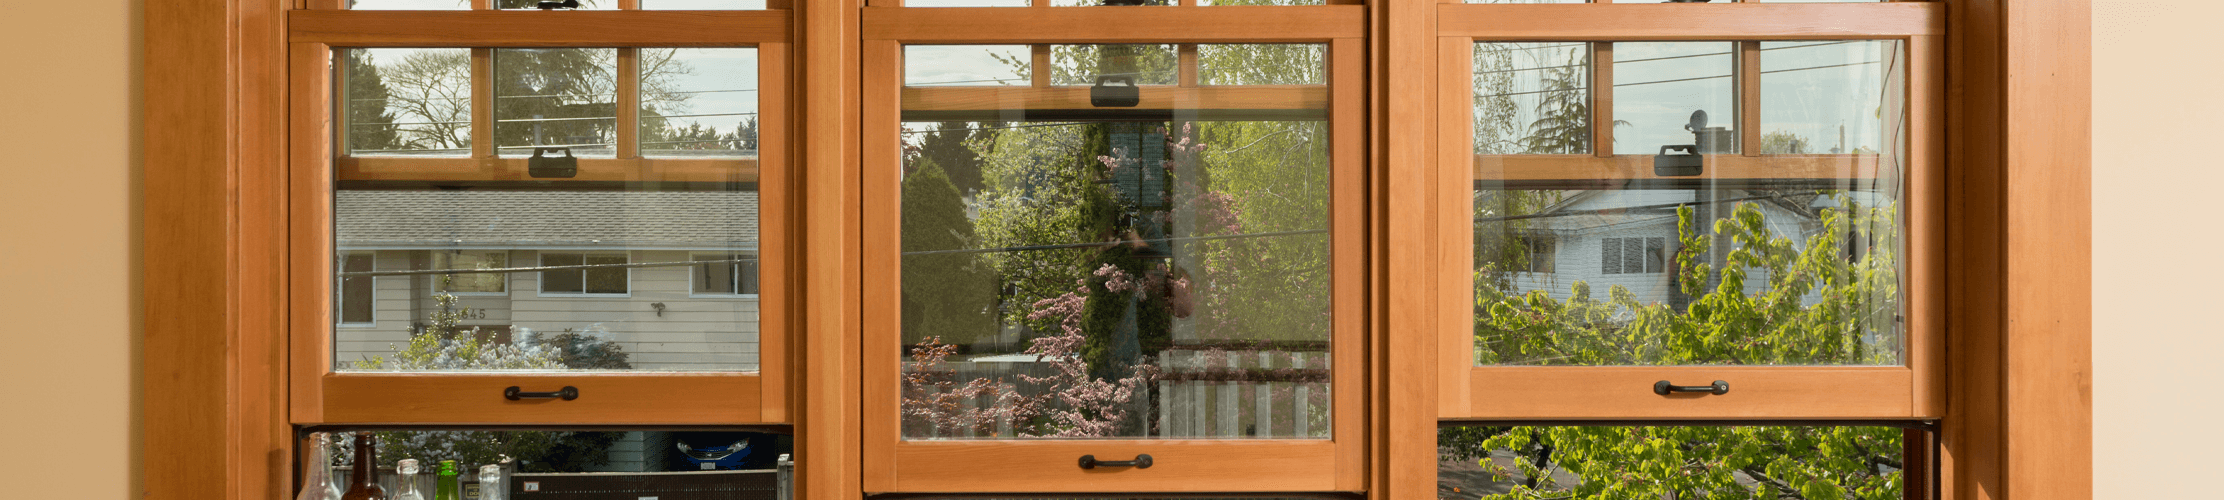 how to clean foggy glass windows